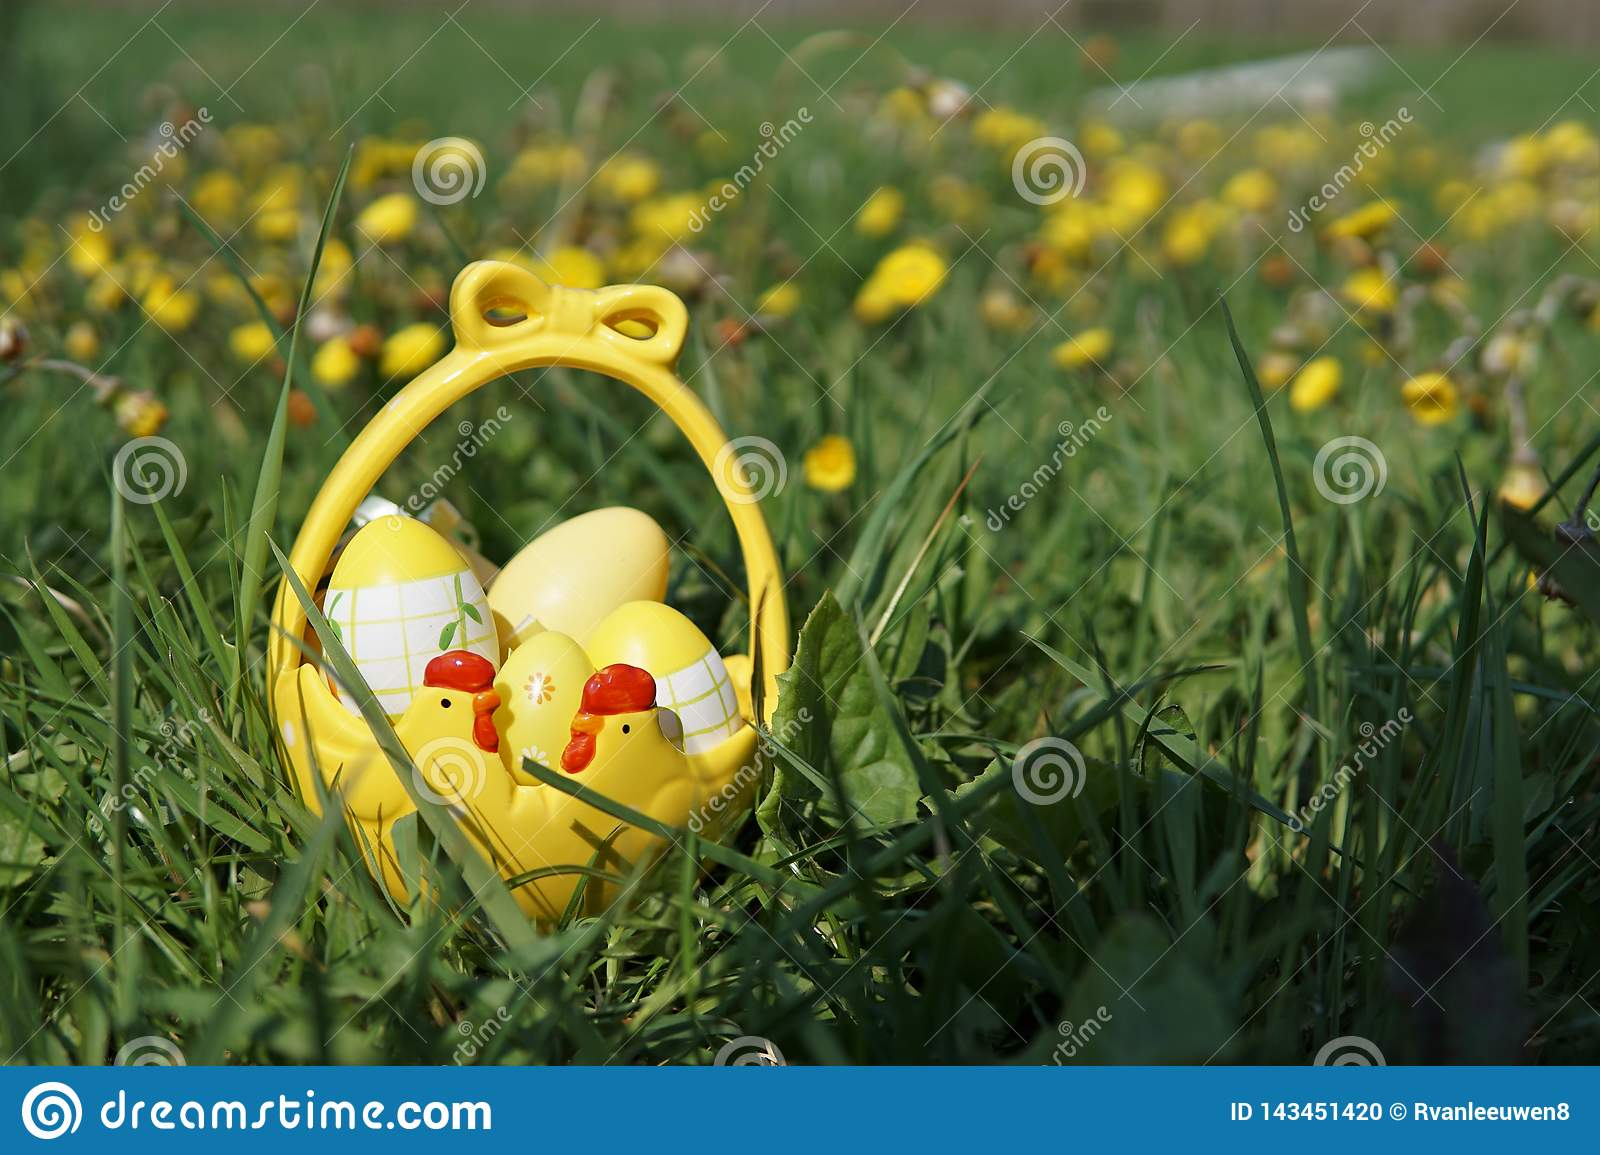 Easter Basket with Eggs in Grass